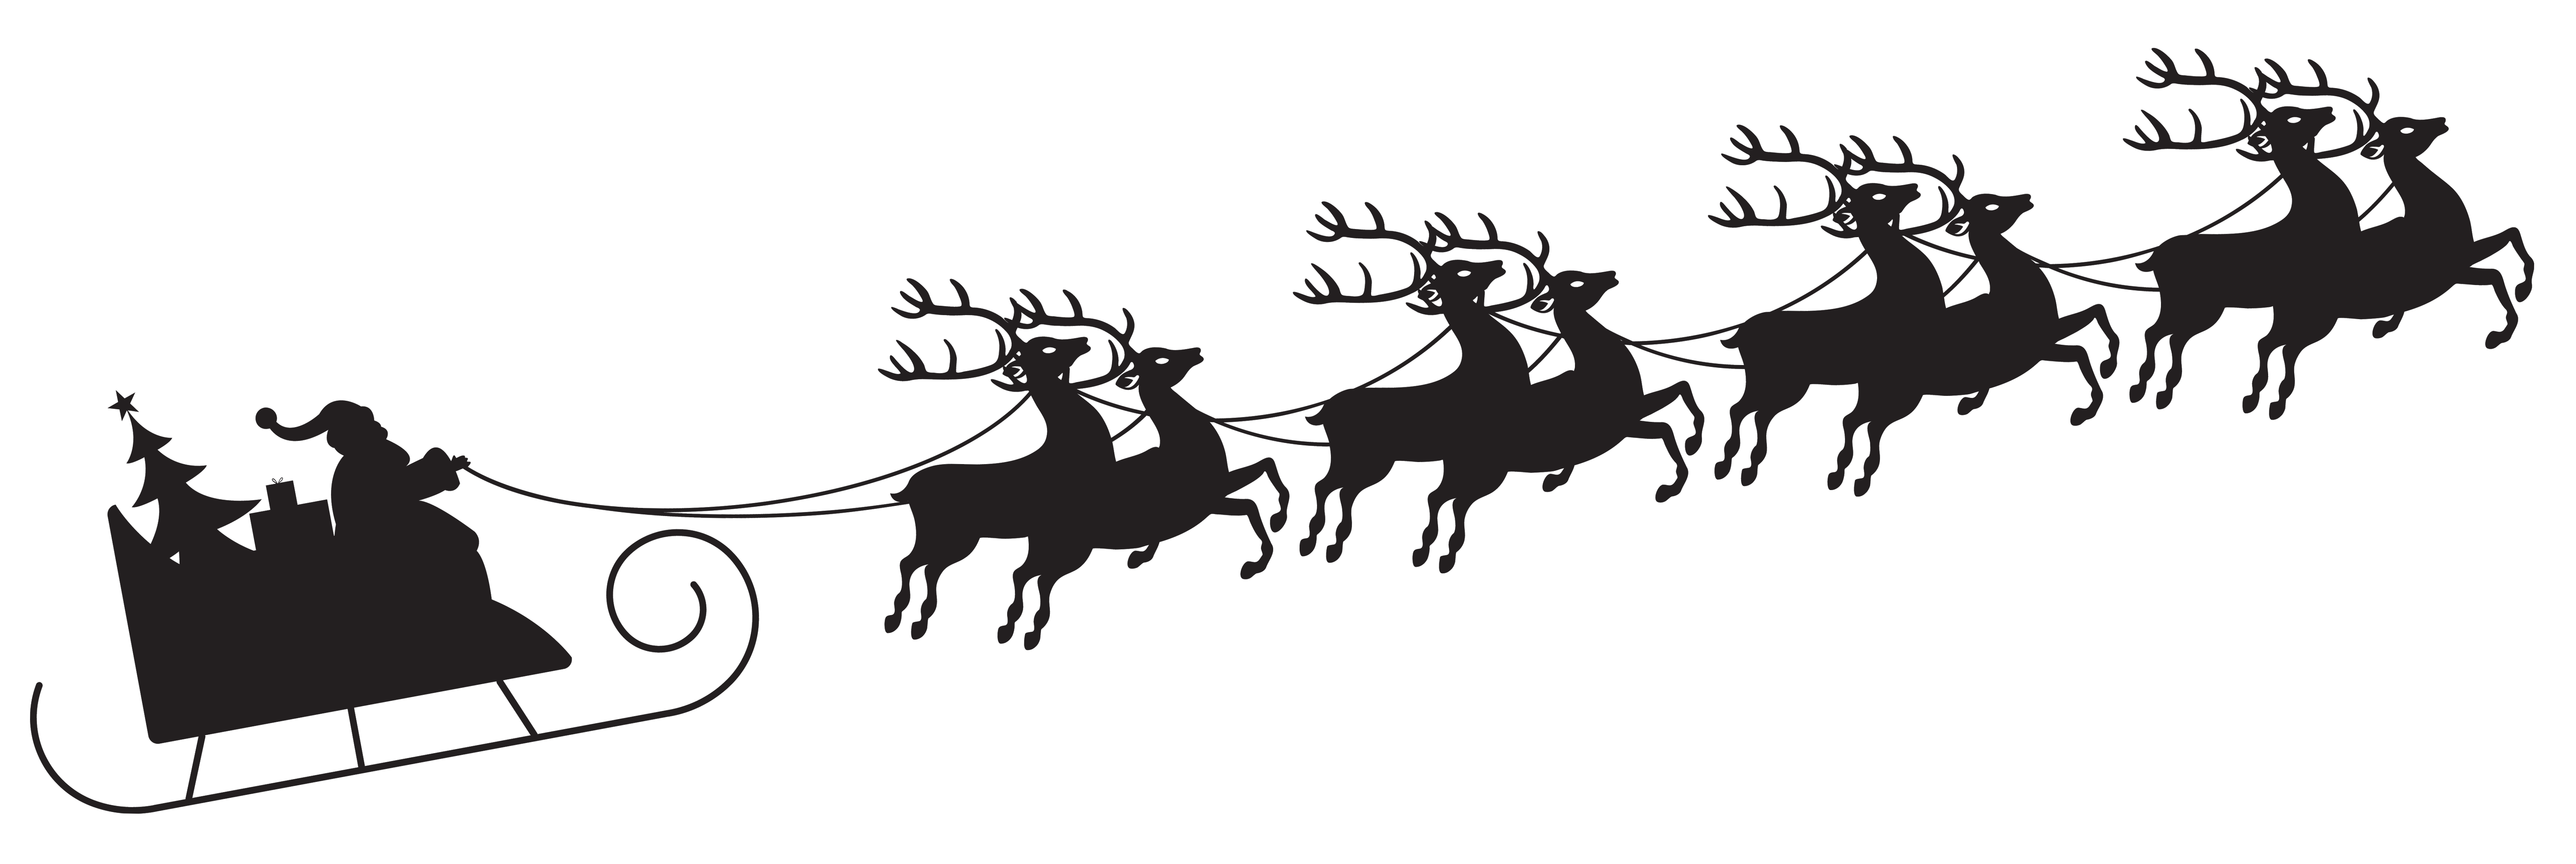 Santa and reindeer clipart to overlay on moon clipart transparent download silhouette of horse drawn sleigh | Gallery For > Santa Sleigh ... clipart transparent download